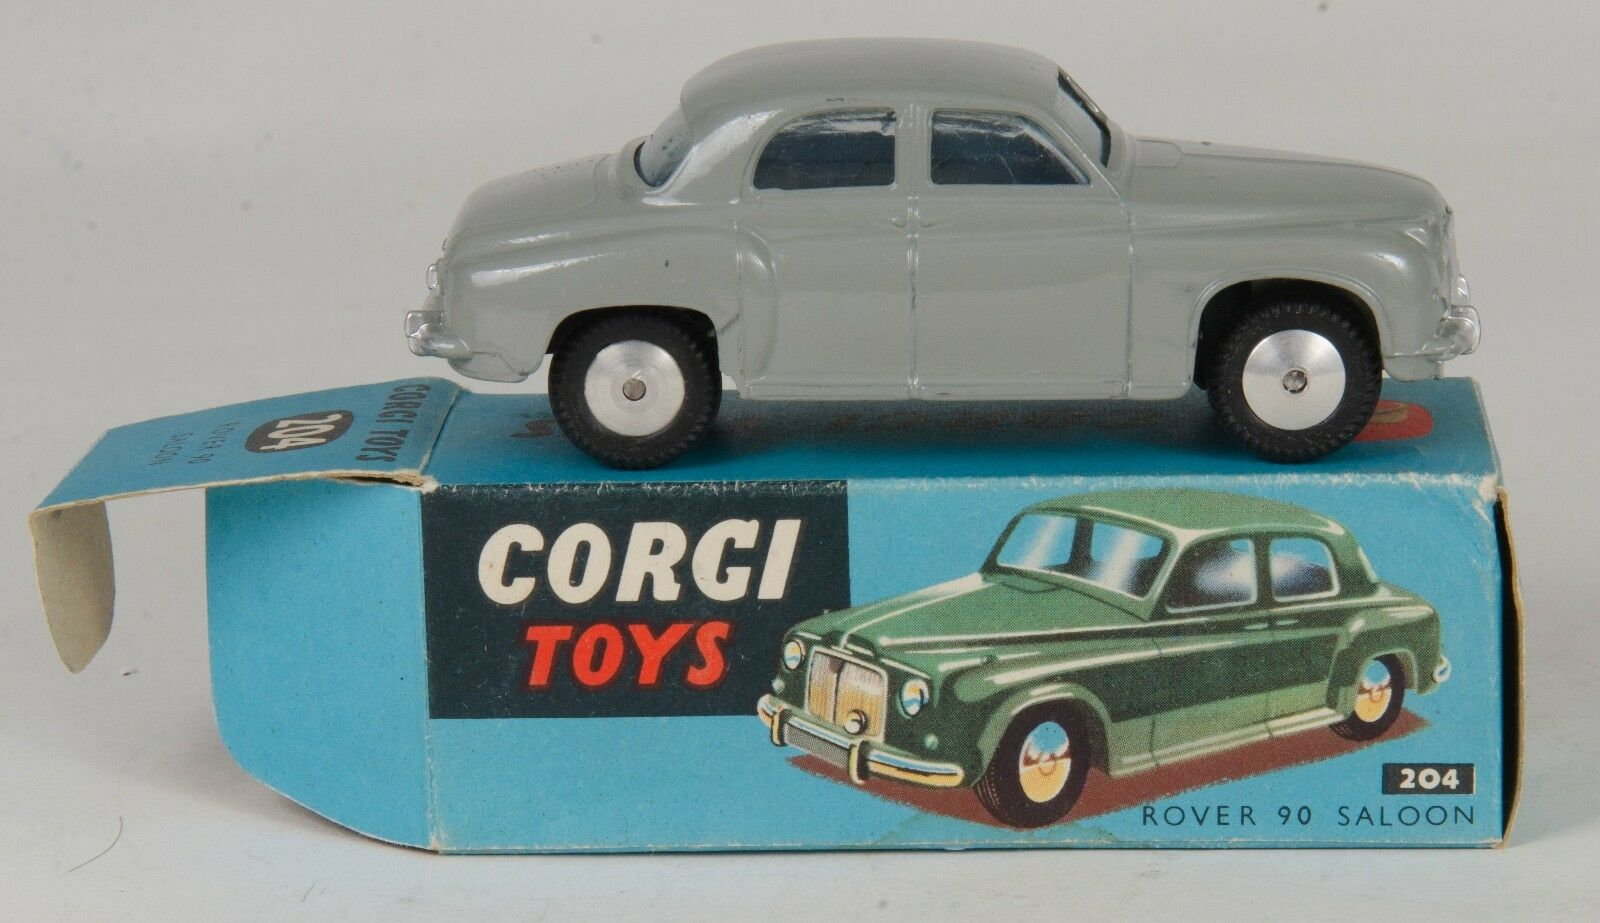 Corgi 204 Rover 90 Saloon. Grey. Near-MINT. In Rare bluee Box. Original 1950's